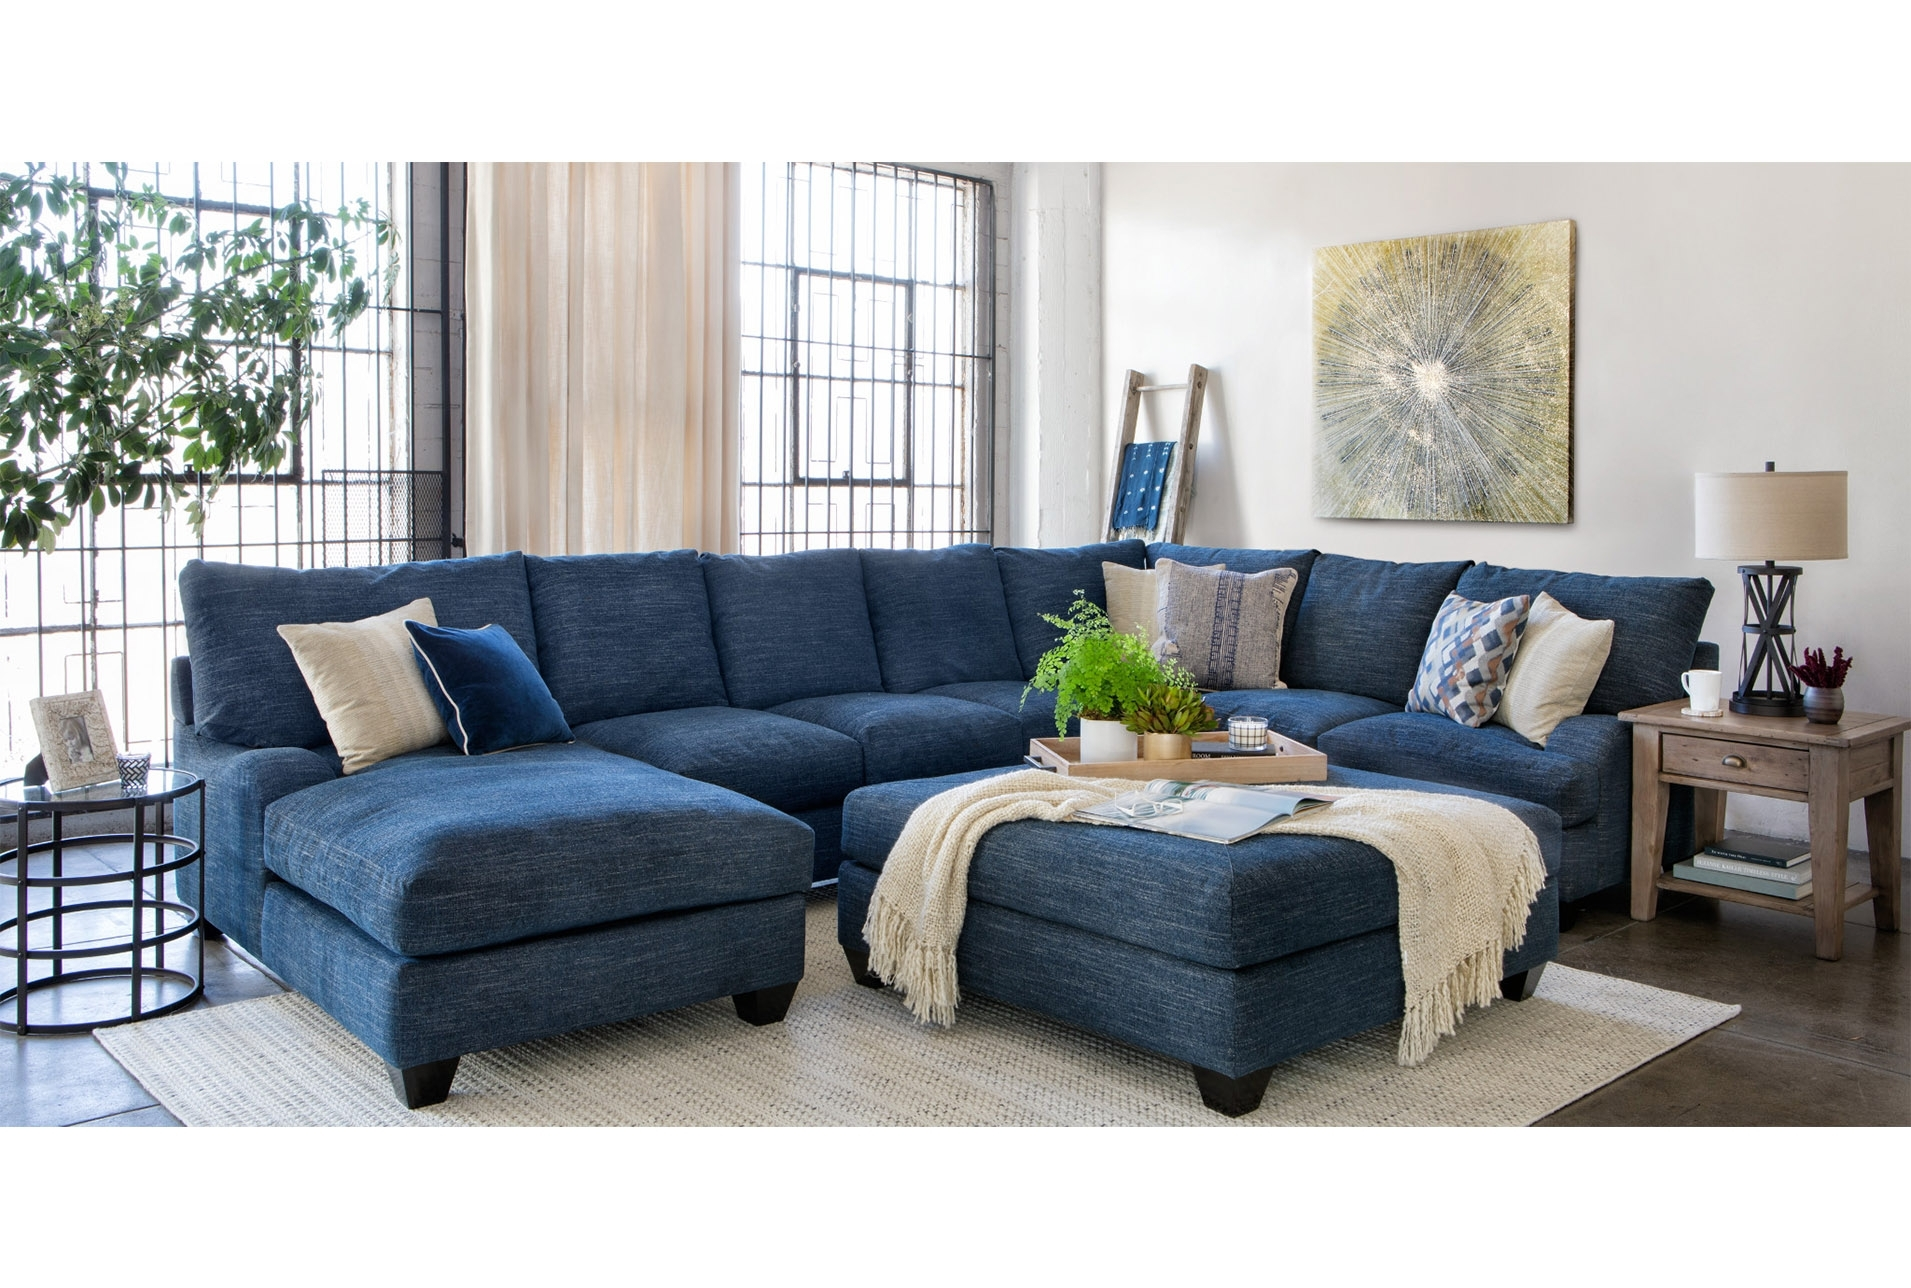 Sierra Down 3 Piece Sectional W/laf Chaise | Products | Pinterest With Regard To Sierra Down 3 Piece Sectionals With Laf Chaise (Image 23 of 25)